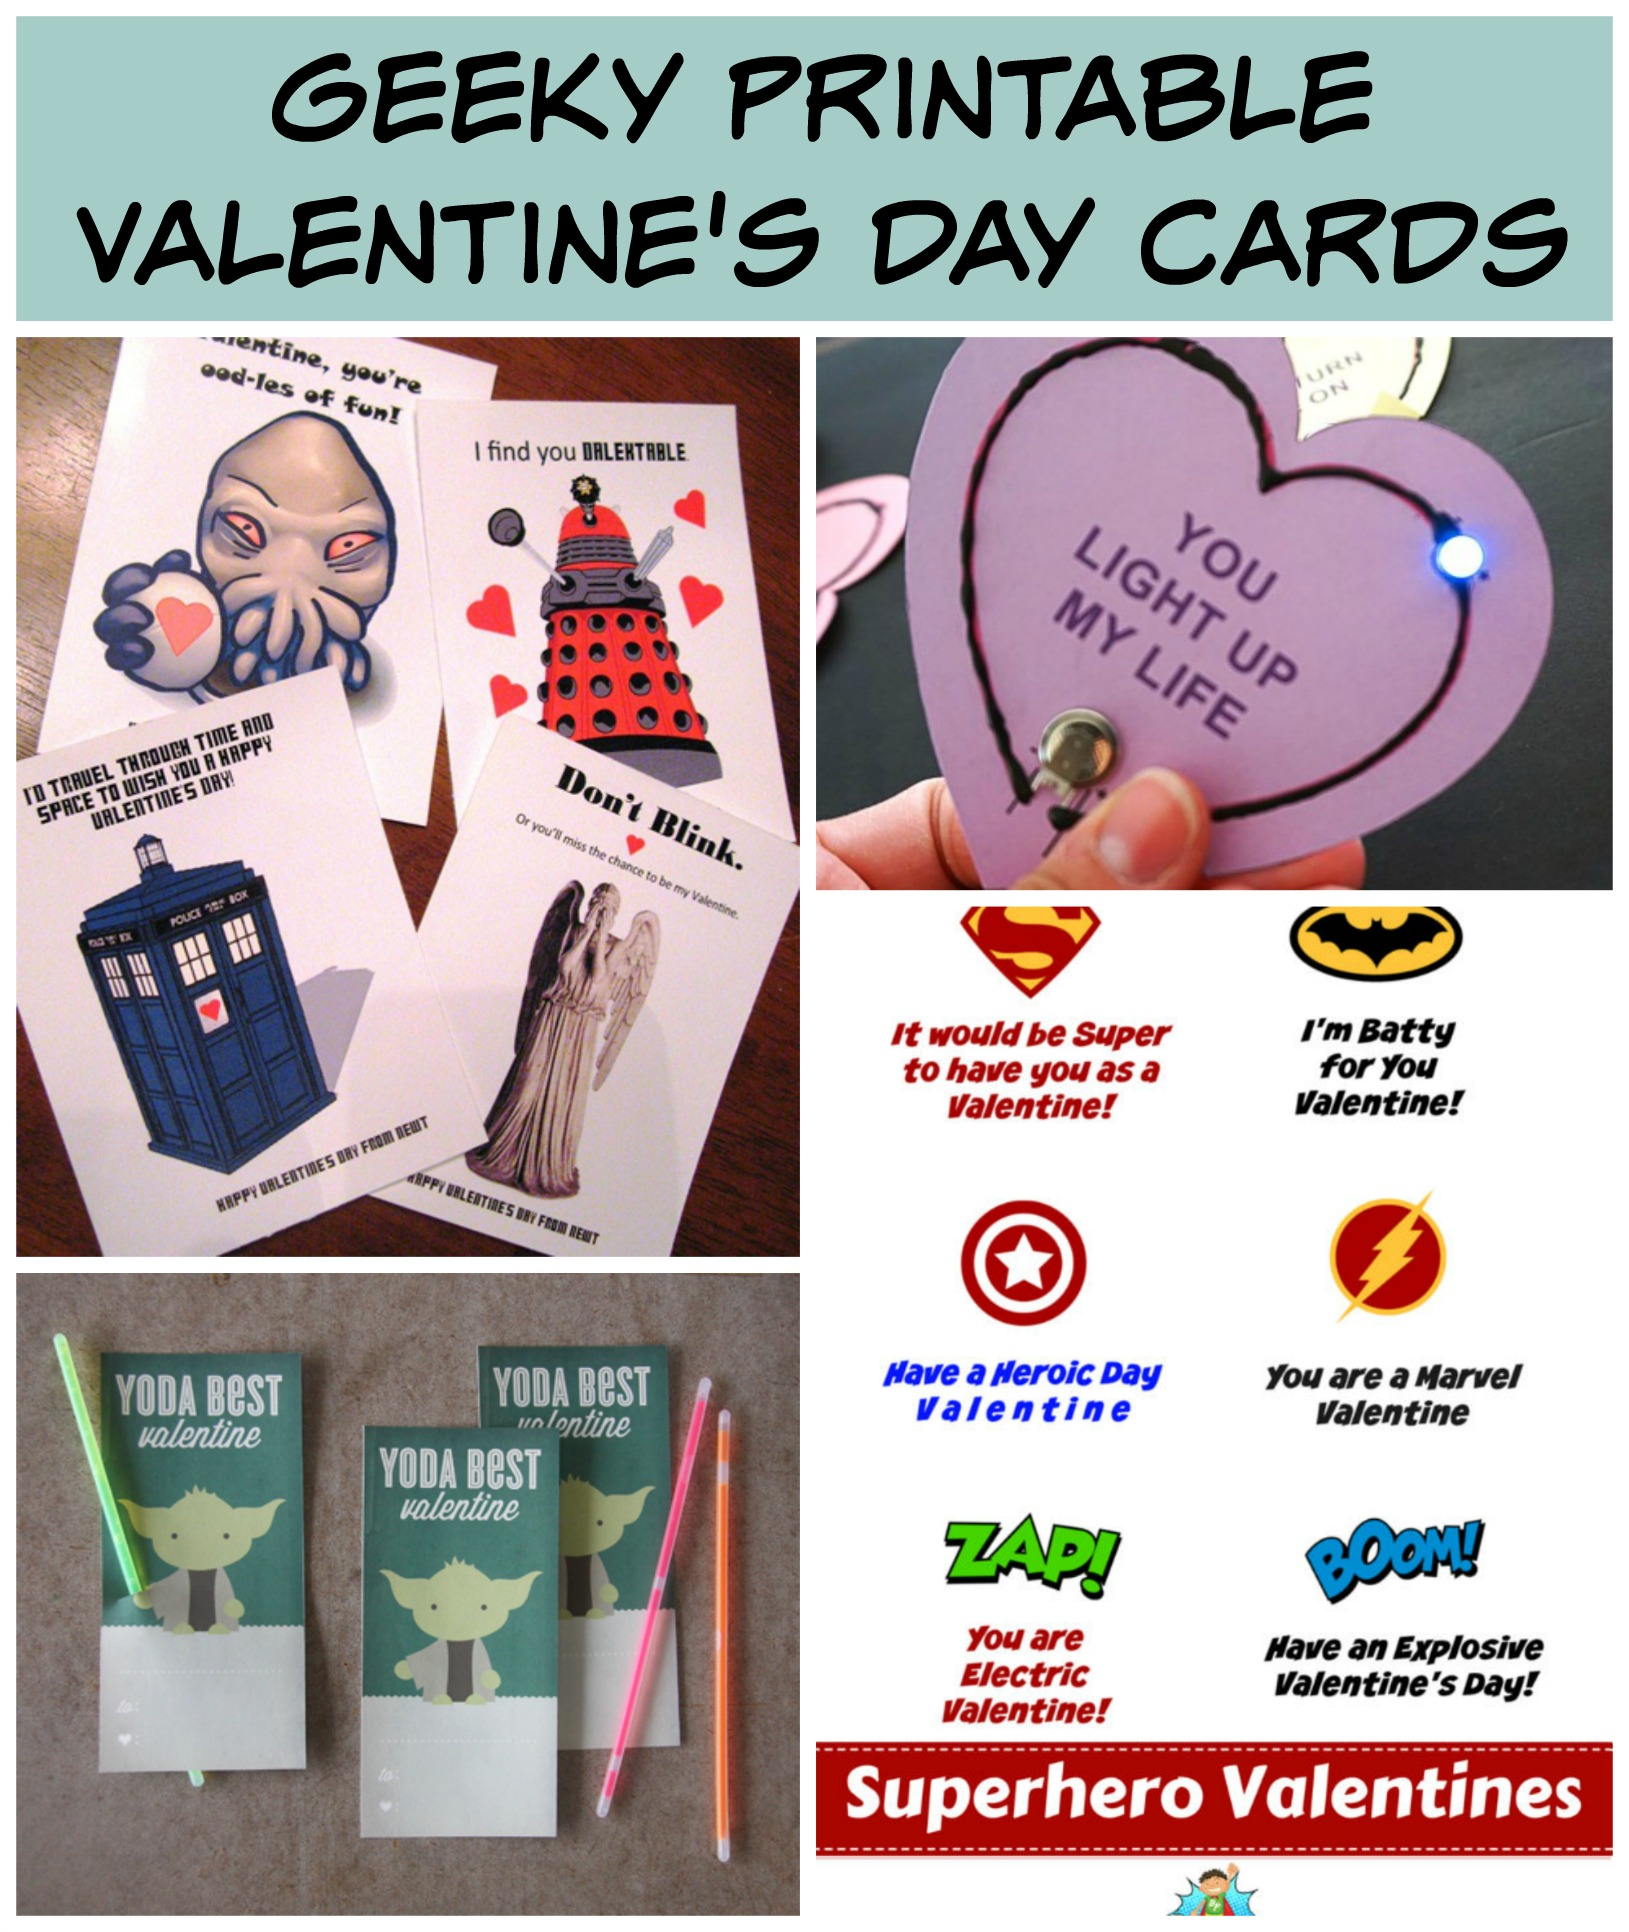 Free Printables For Geeky Valentineu0027s Day Cards. By NerdMom · Geeky Printable  Valentines